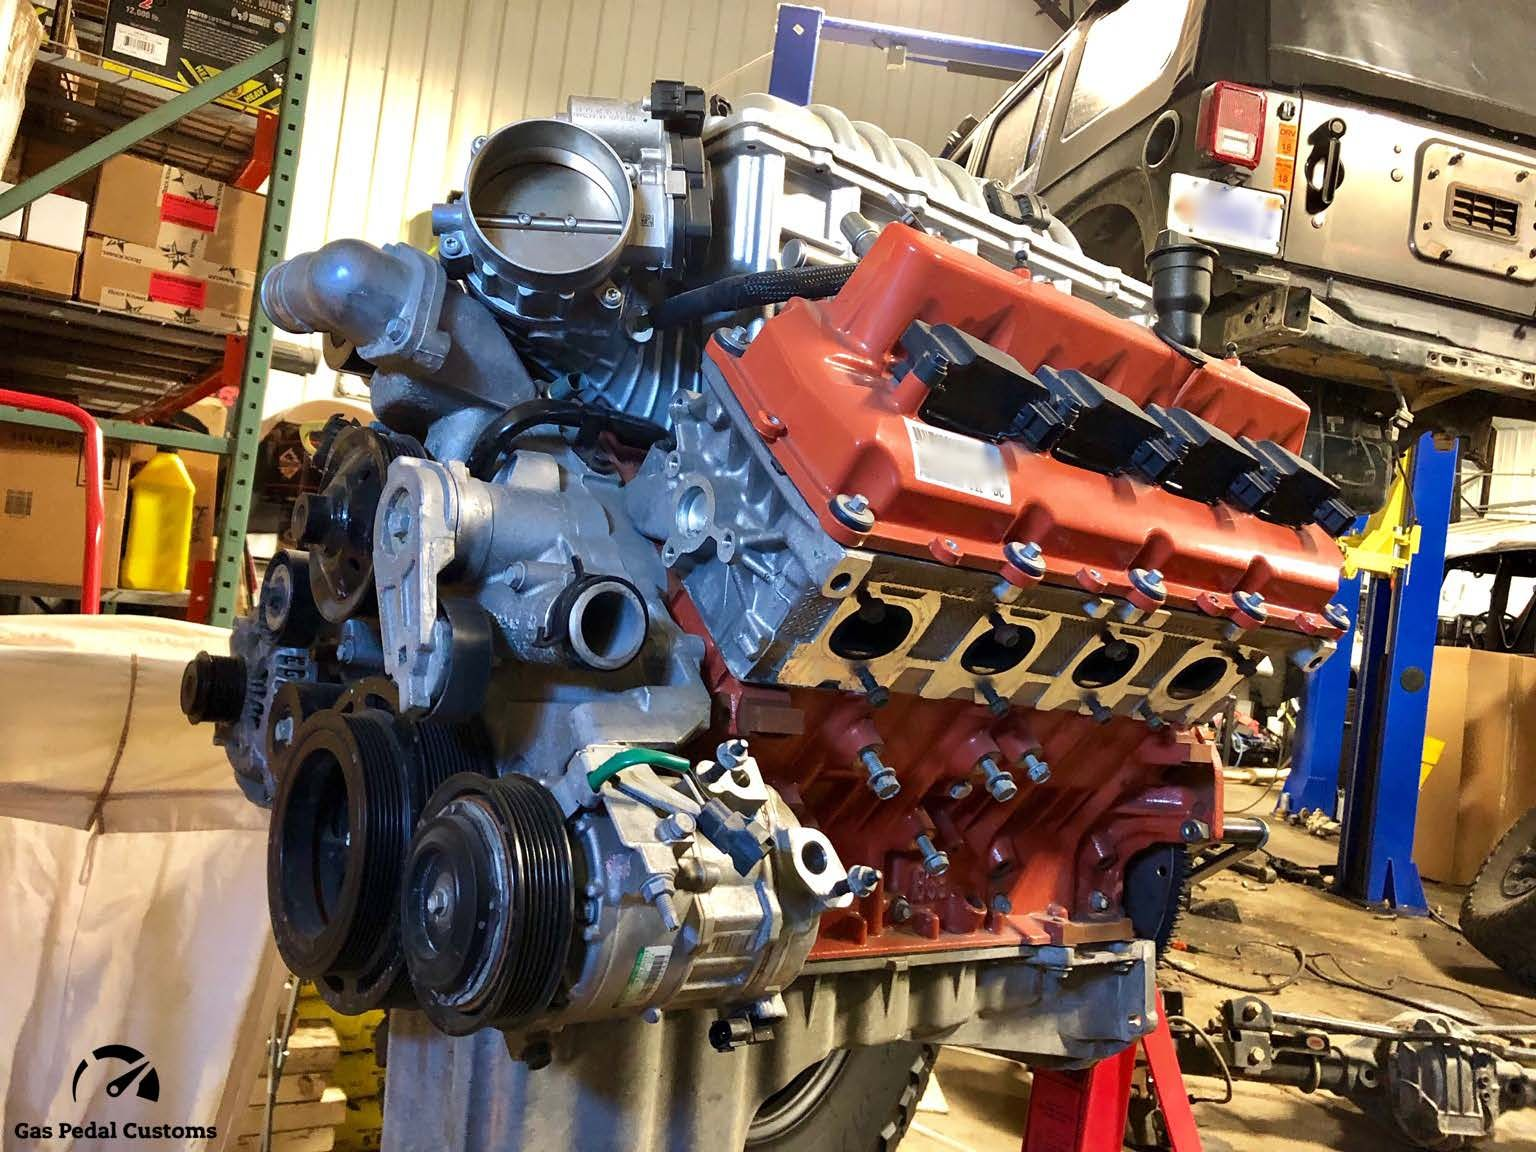 hight resolution of hellcat engine for a custom jeep wrangler unlimited gas pedal customs hemi jeep conversions jeep suspension systems accessories wheels and more